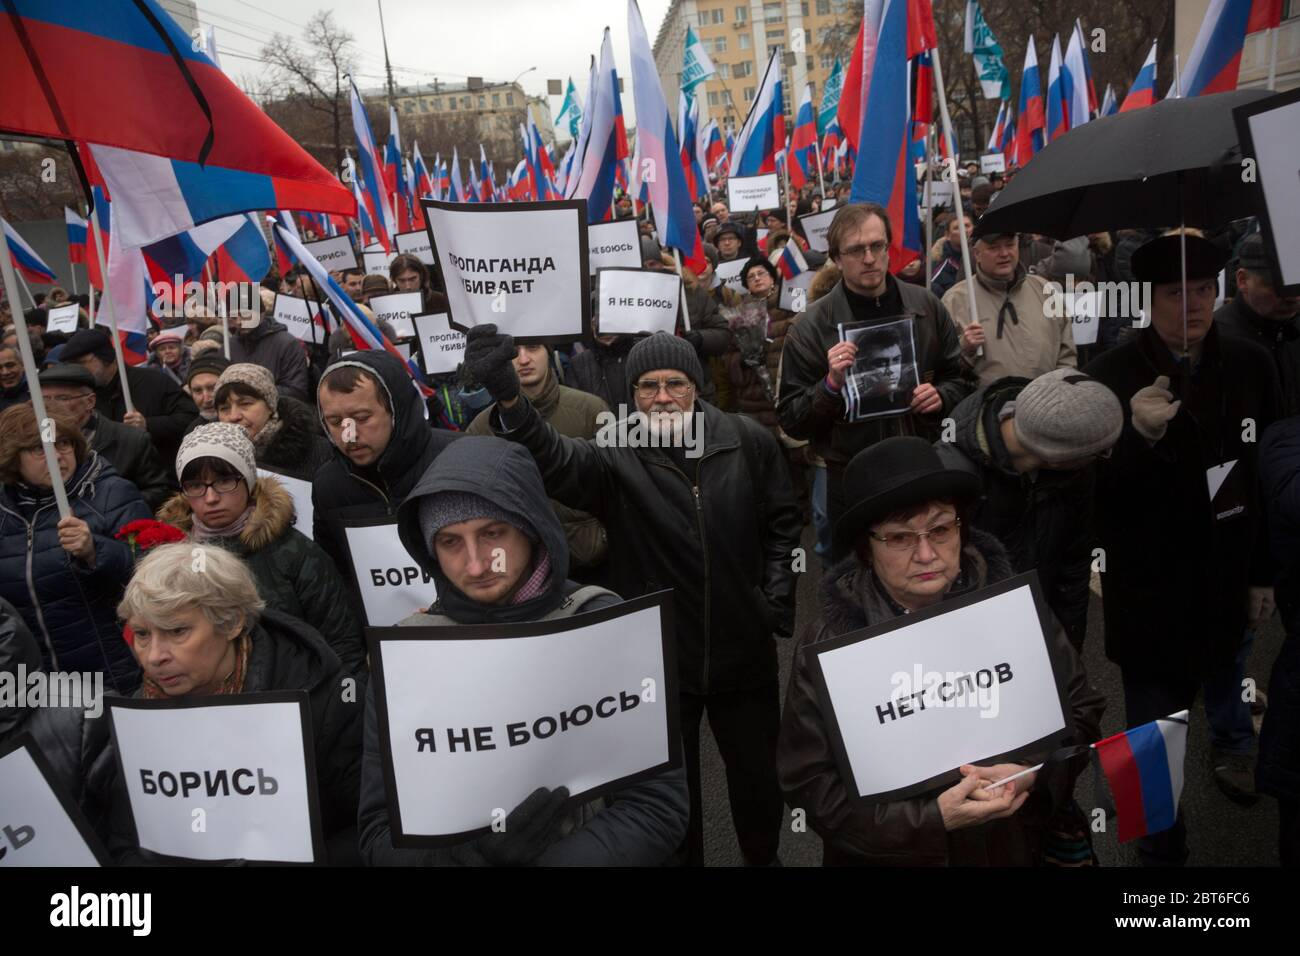 Moscow, Russia. 1st of March, 2015 Participants of the funeral procession hold banners in memory of opposition politician Boris Nemtsov, who was killed on the night of February 28, 2015 on the Bolshoy Moskvoretsky bridge in Moscow, Russia Stock Photo